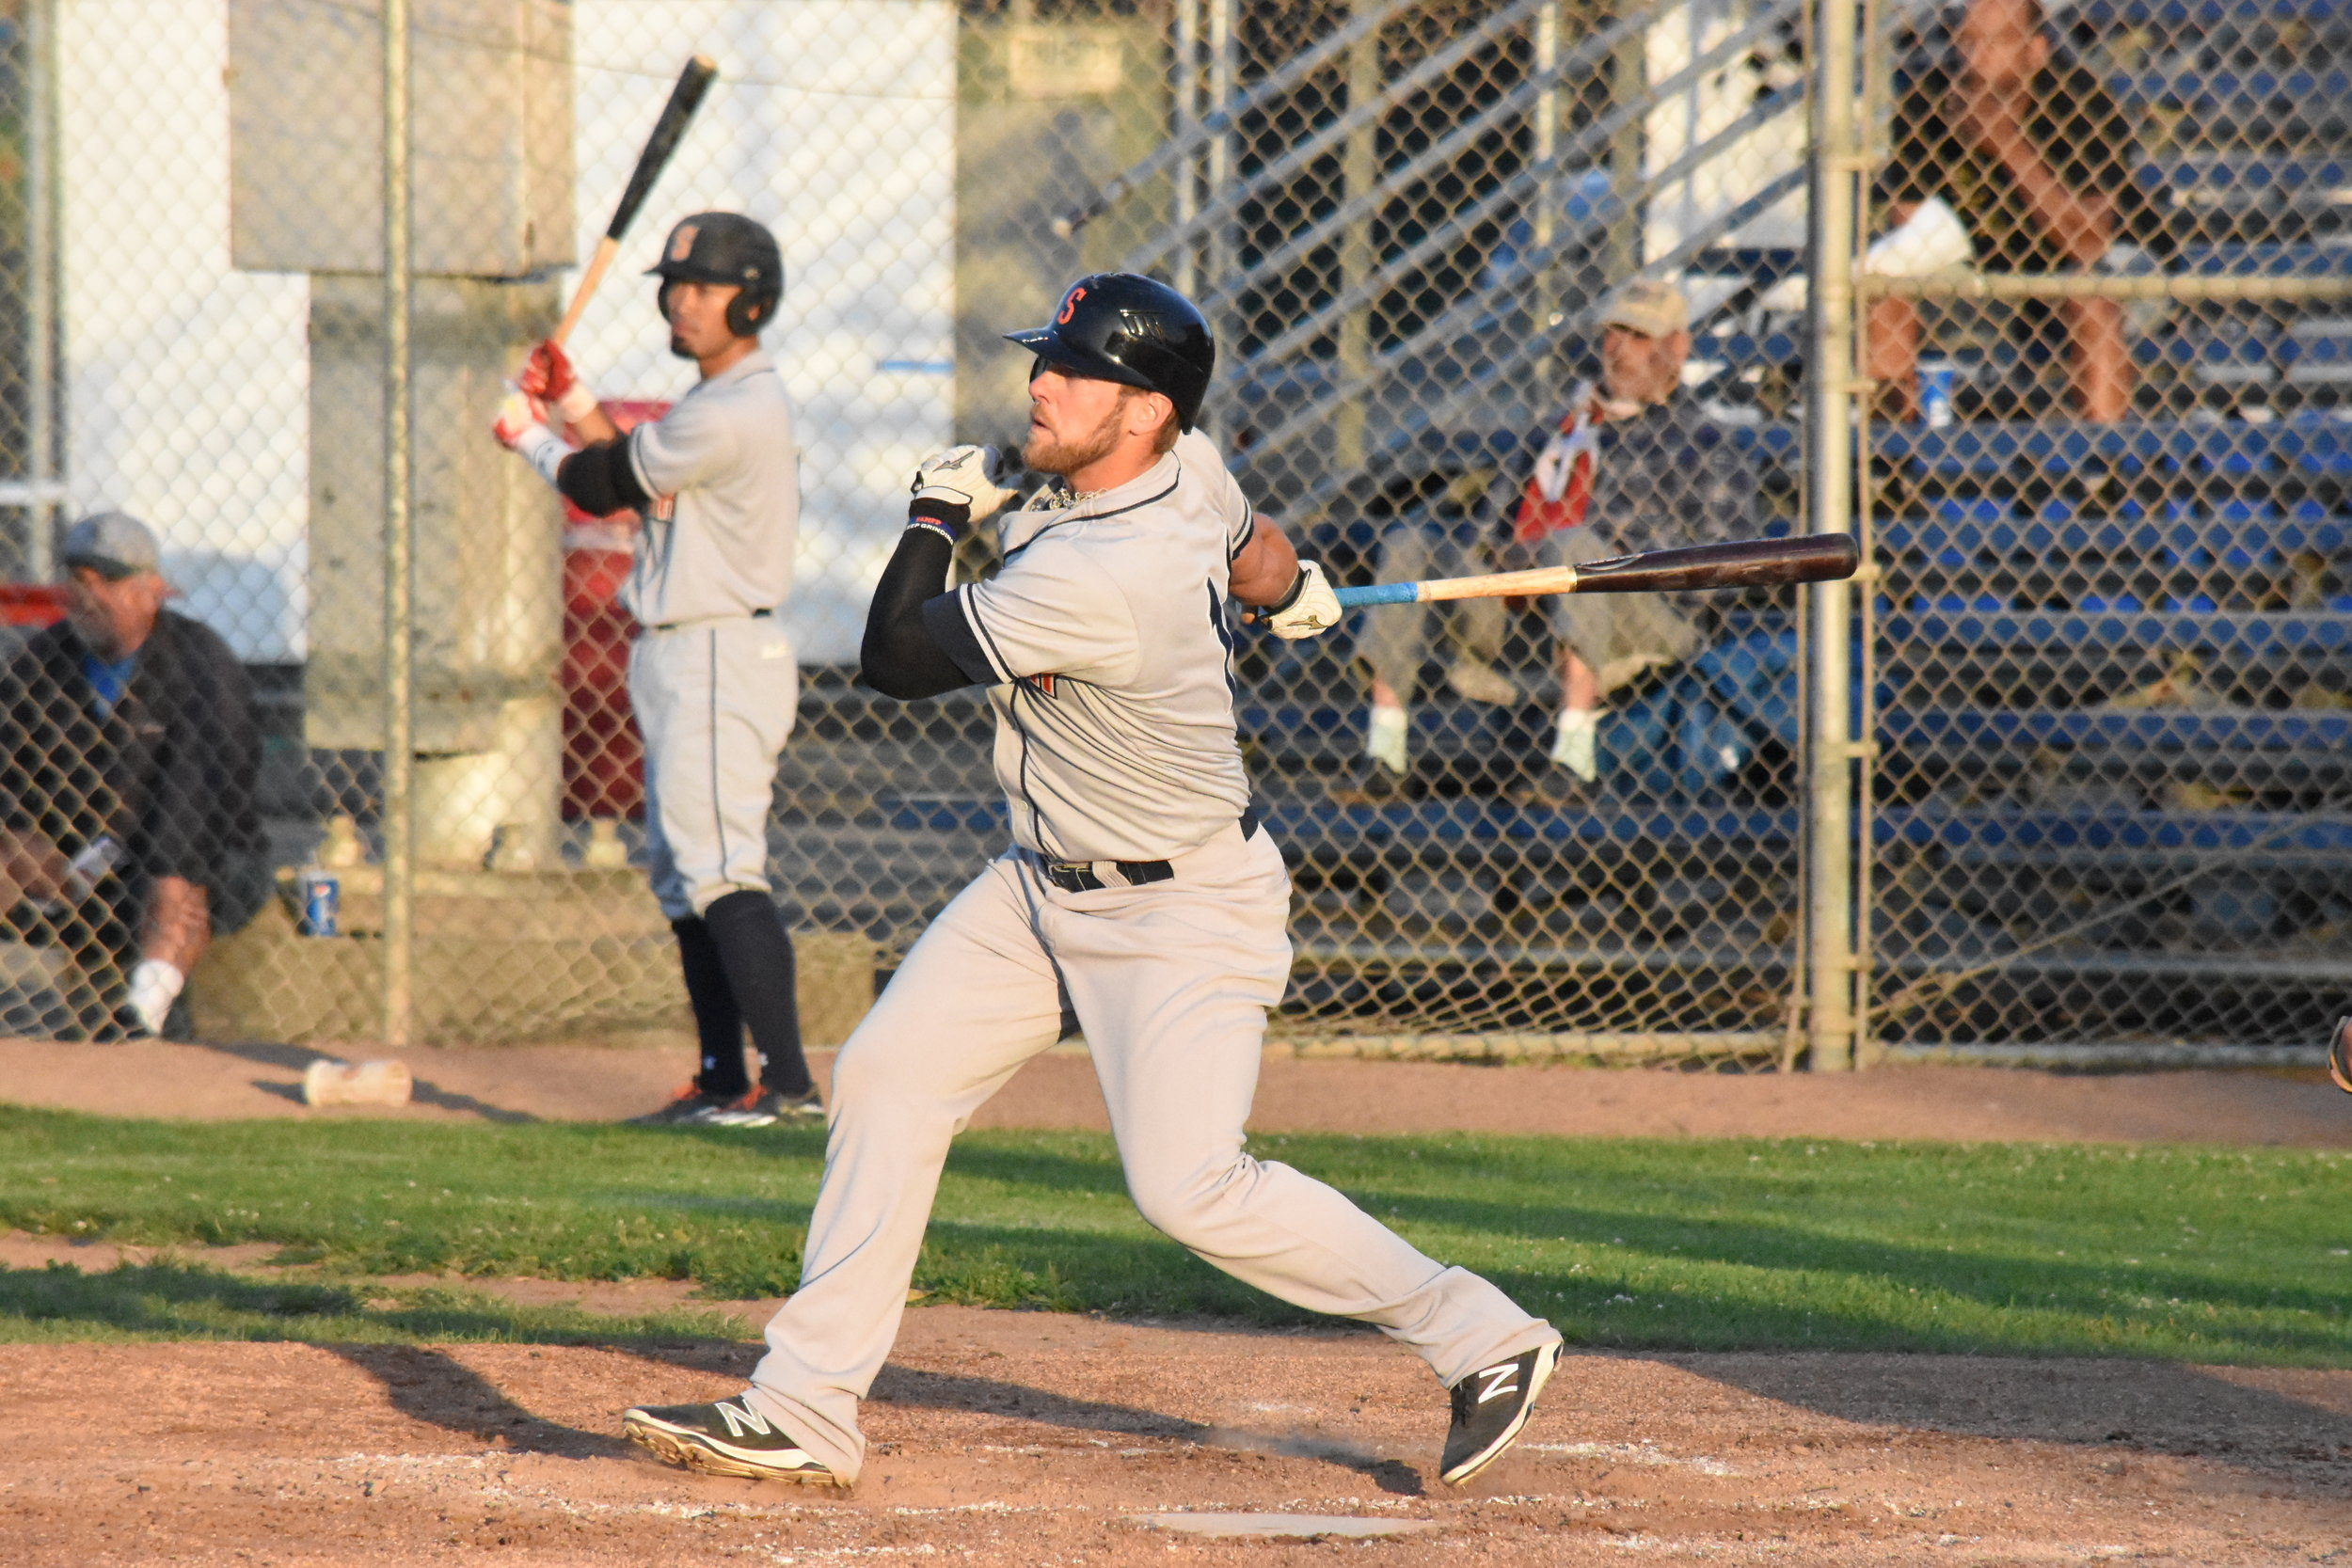 Scott David went 2 for 4 in the Sonoma Stompers' 12-3 loss to the Vallejo Admirals Tuesday at Wilson Park. (James W. Toy III / Sonoma Stompers)